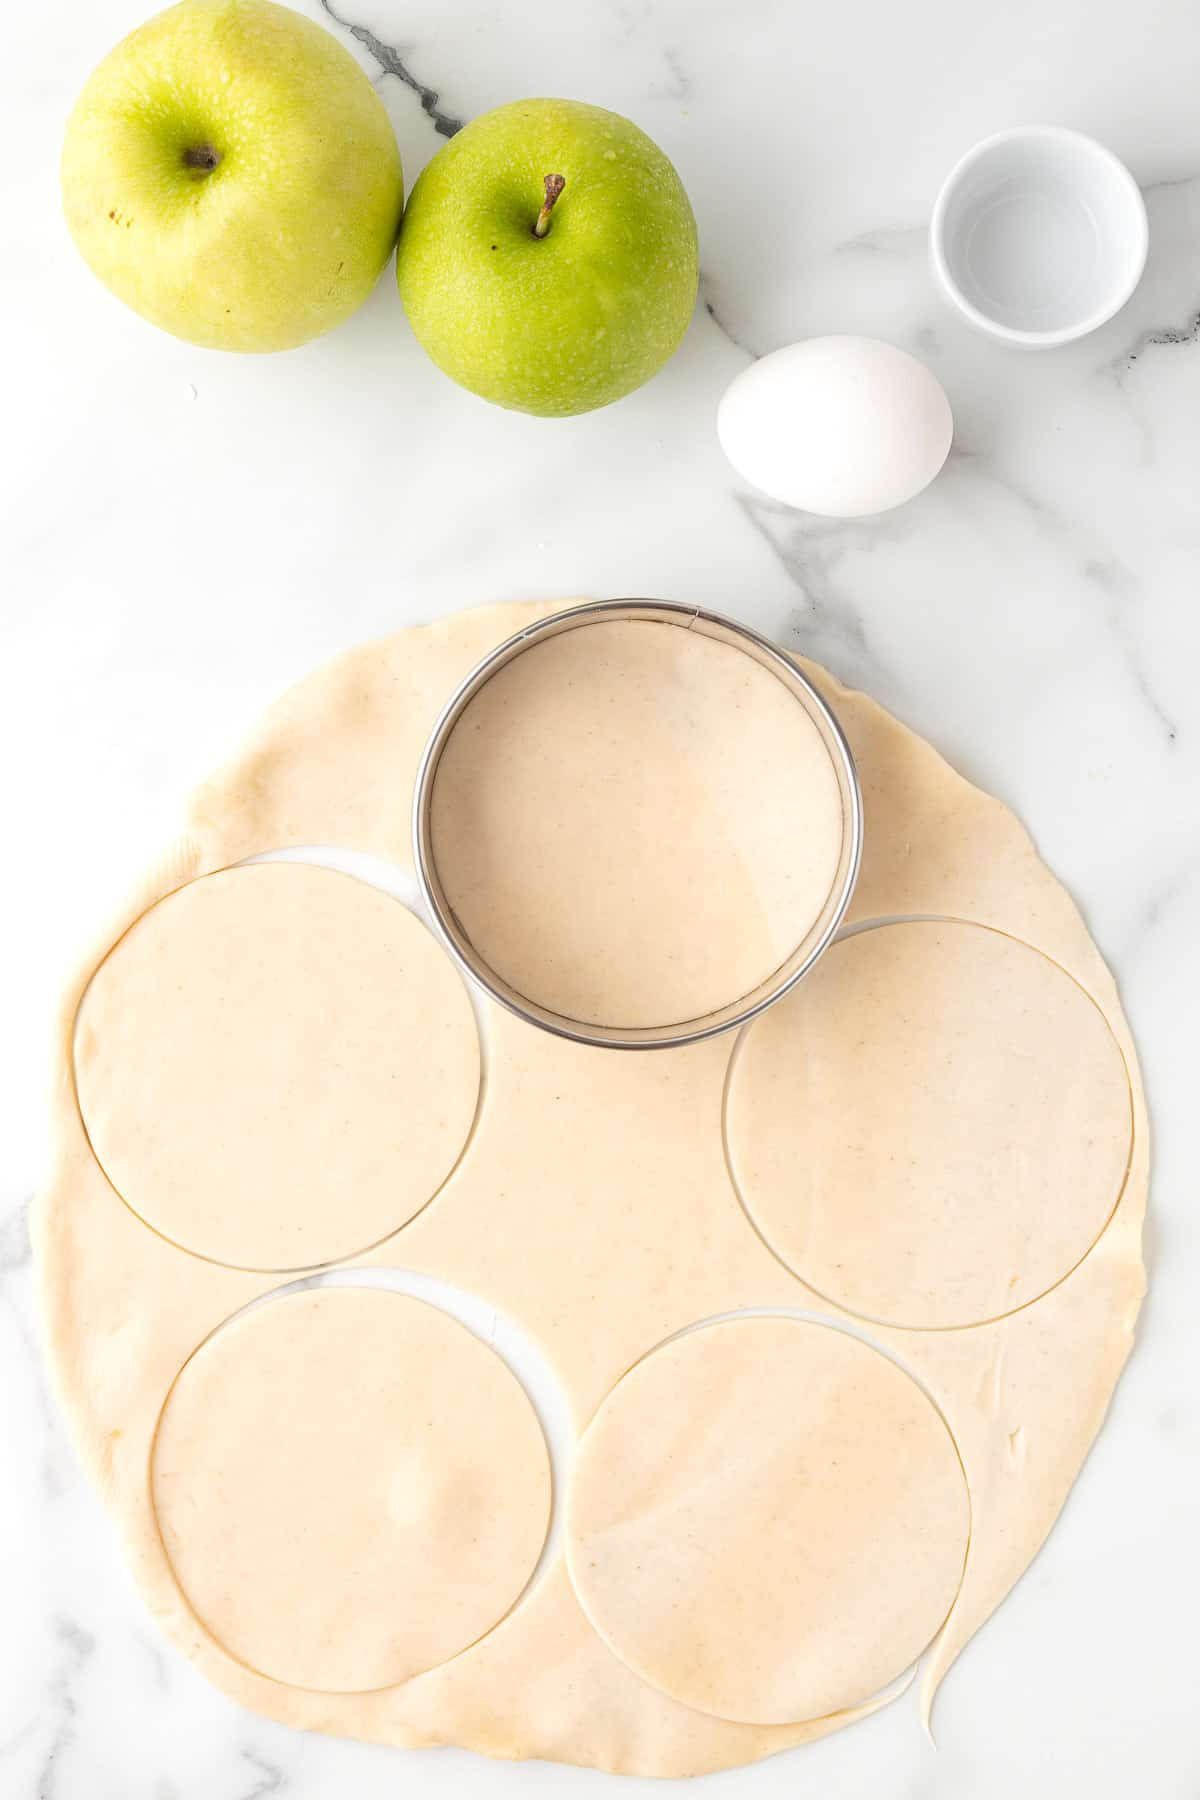 dough rolled out into circles to make individual apple pies